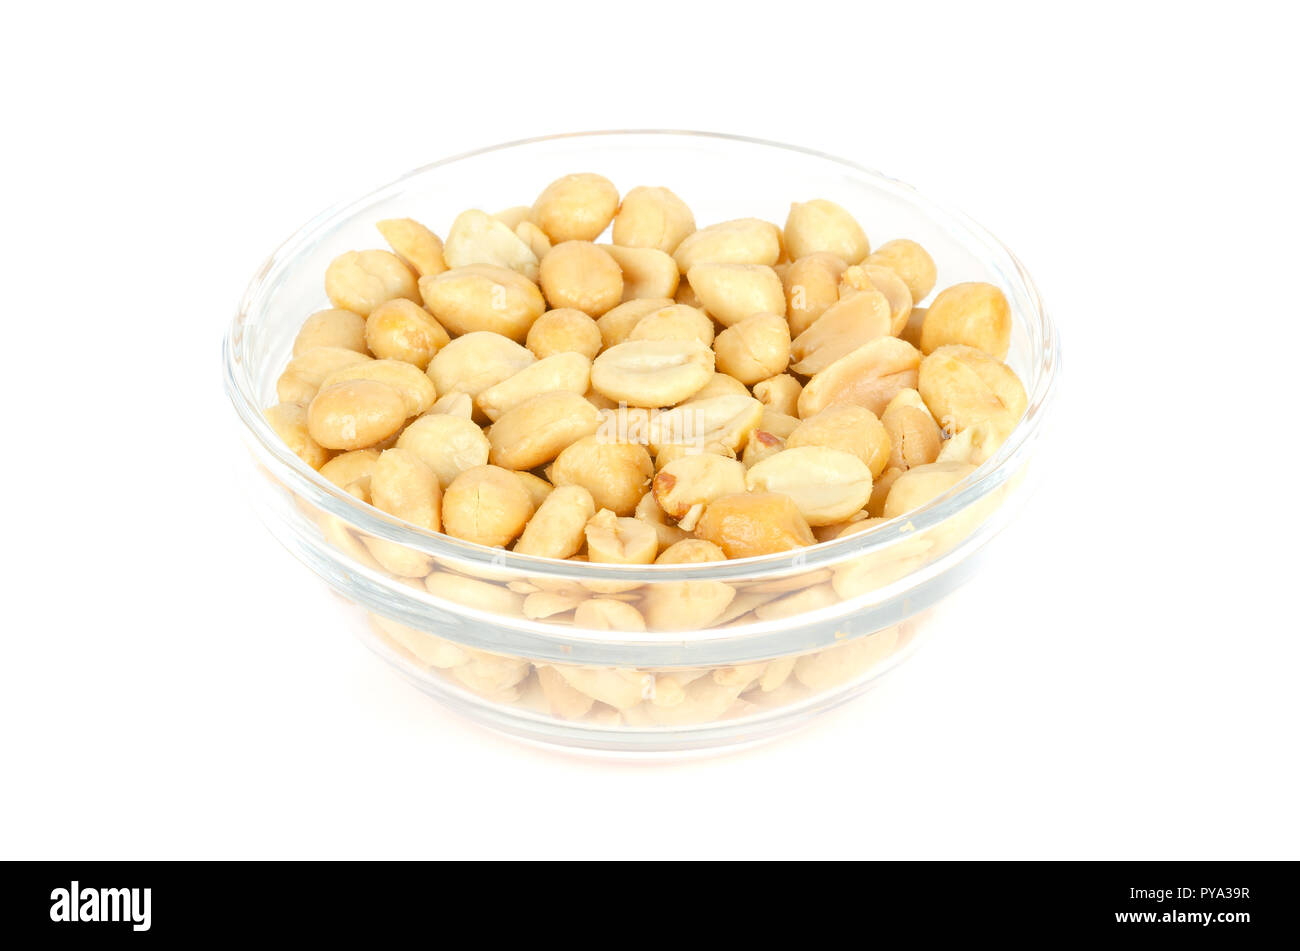 Roasted and salted peanuts in glass bowl. Shelled Arachis hypogaea, also called groundnut or goober, used as a snack. Isolated macro food photo. Stock Photo